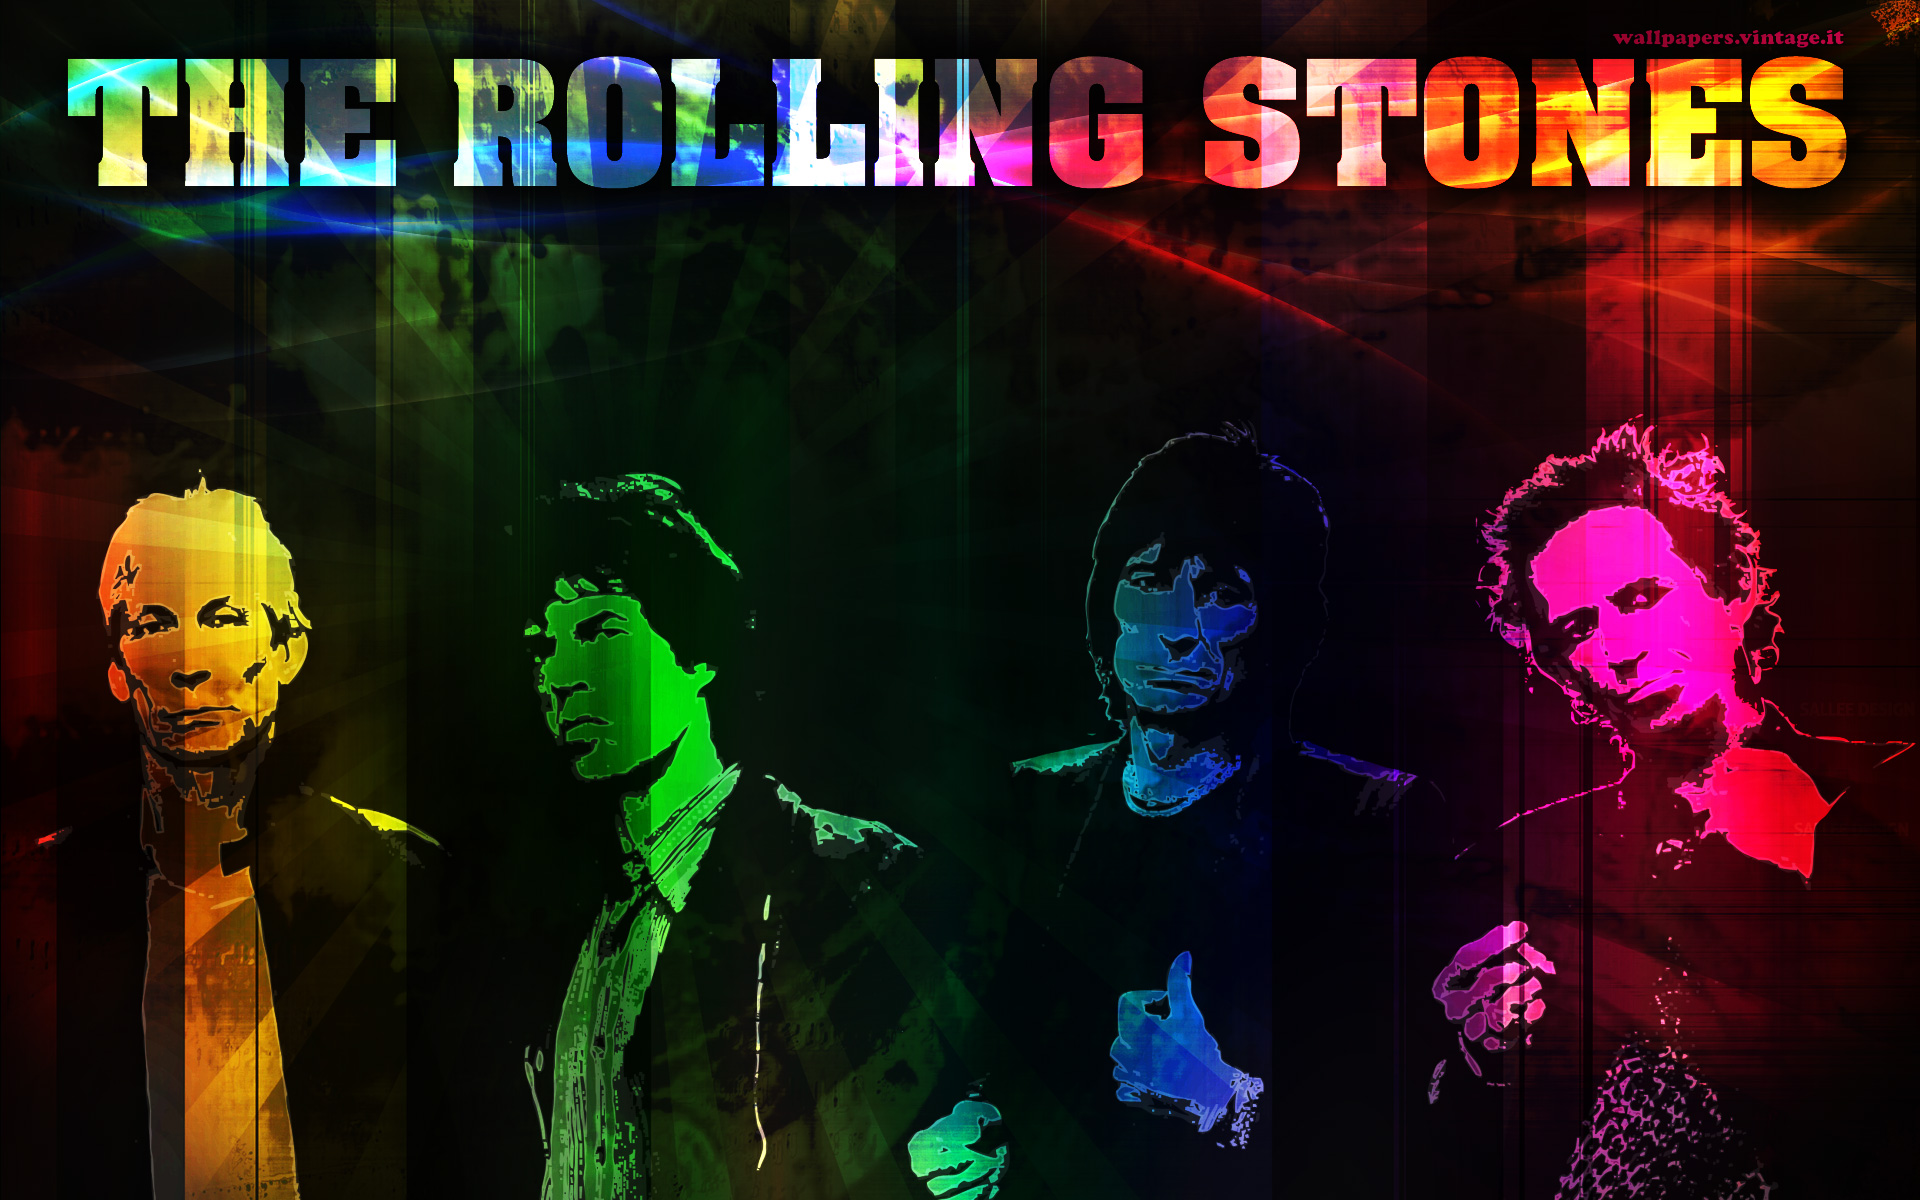 The Rolling Stones Wallpaper